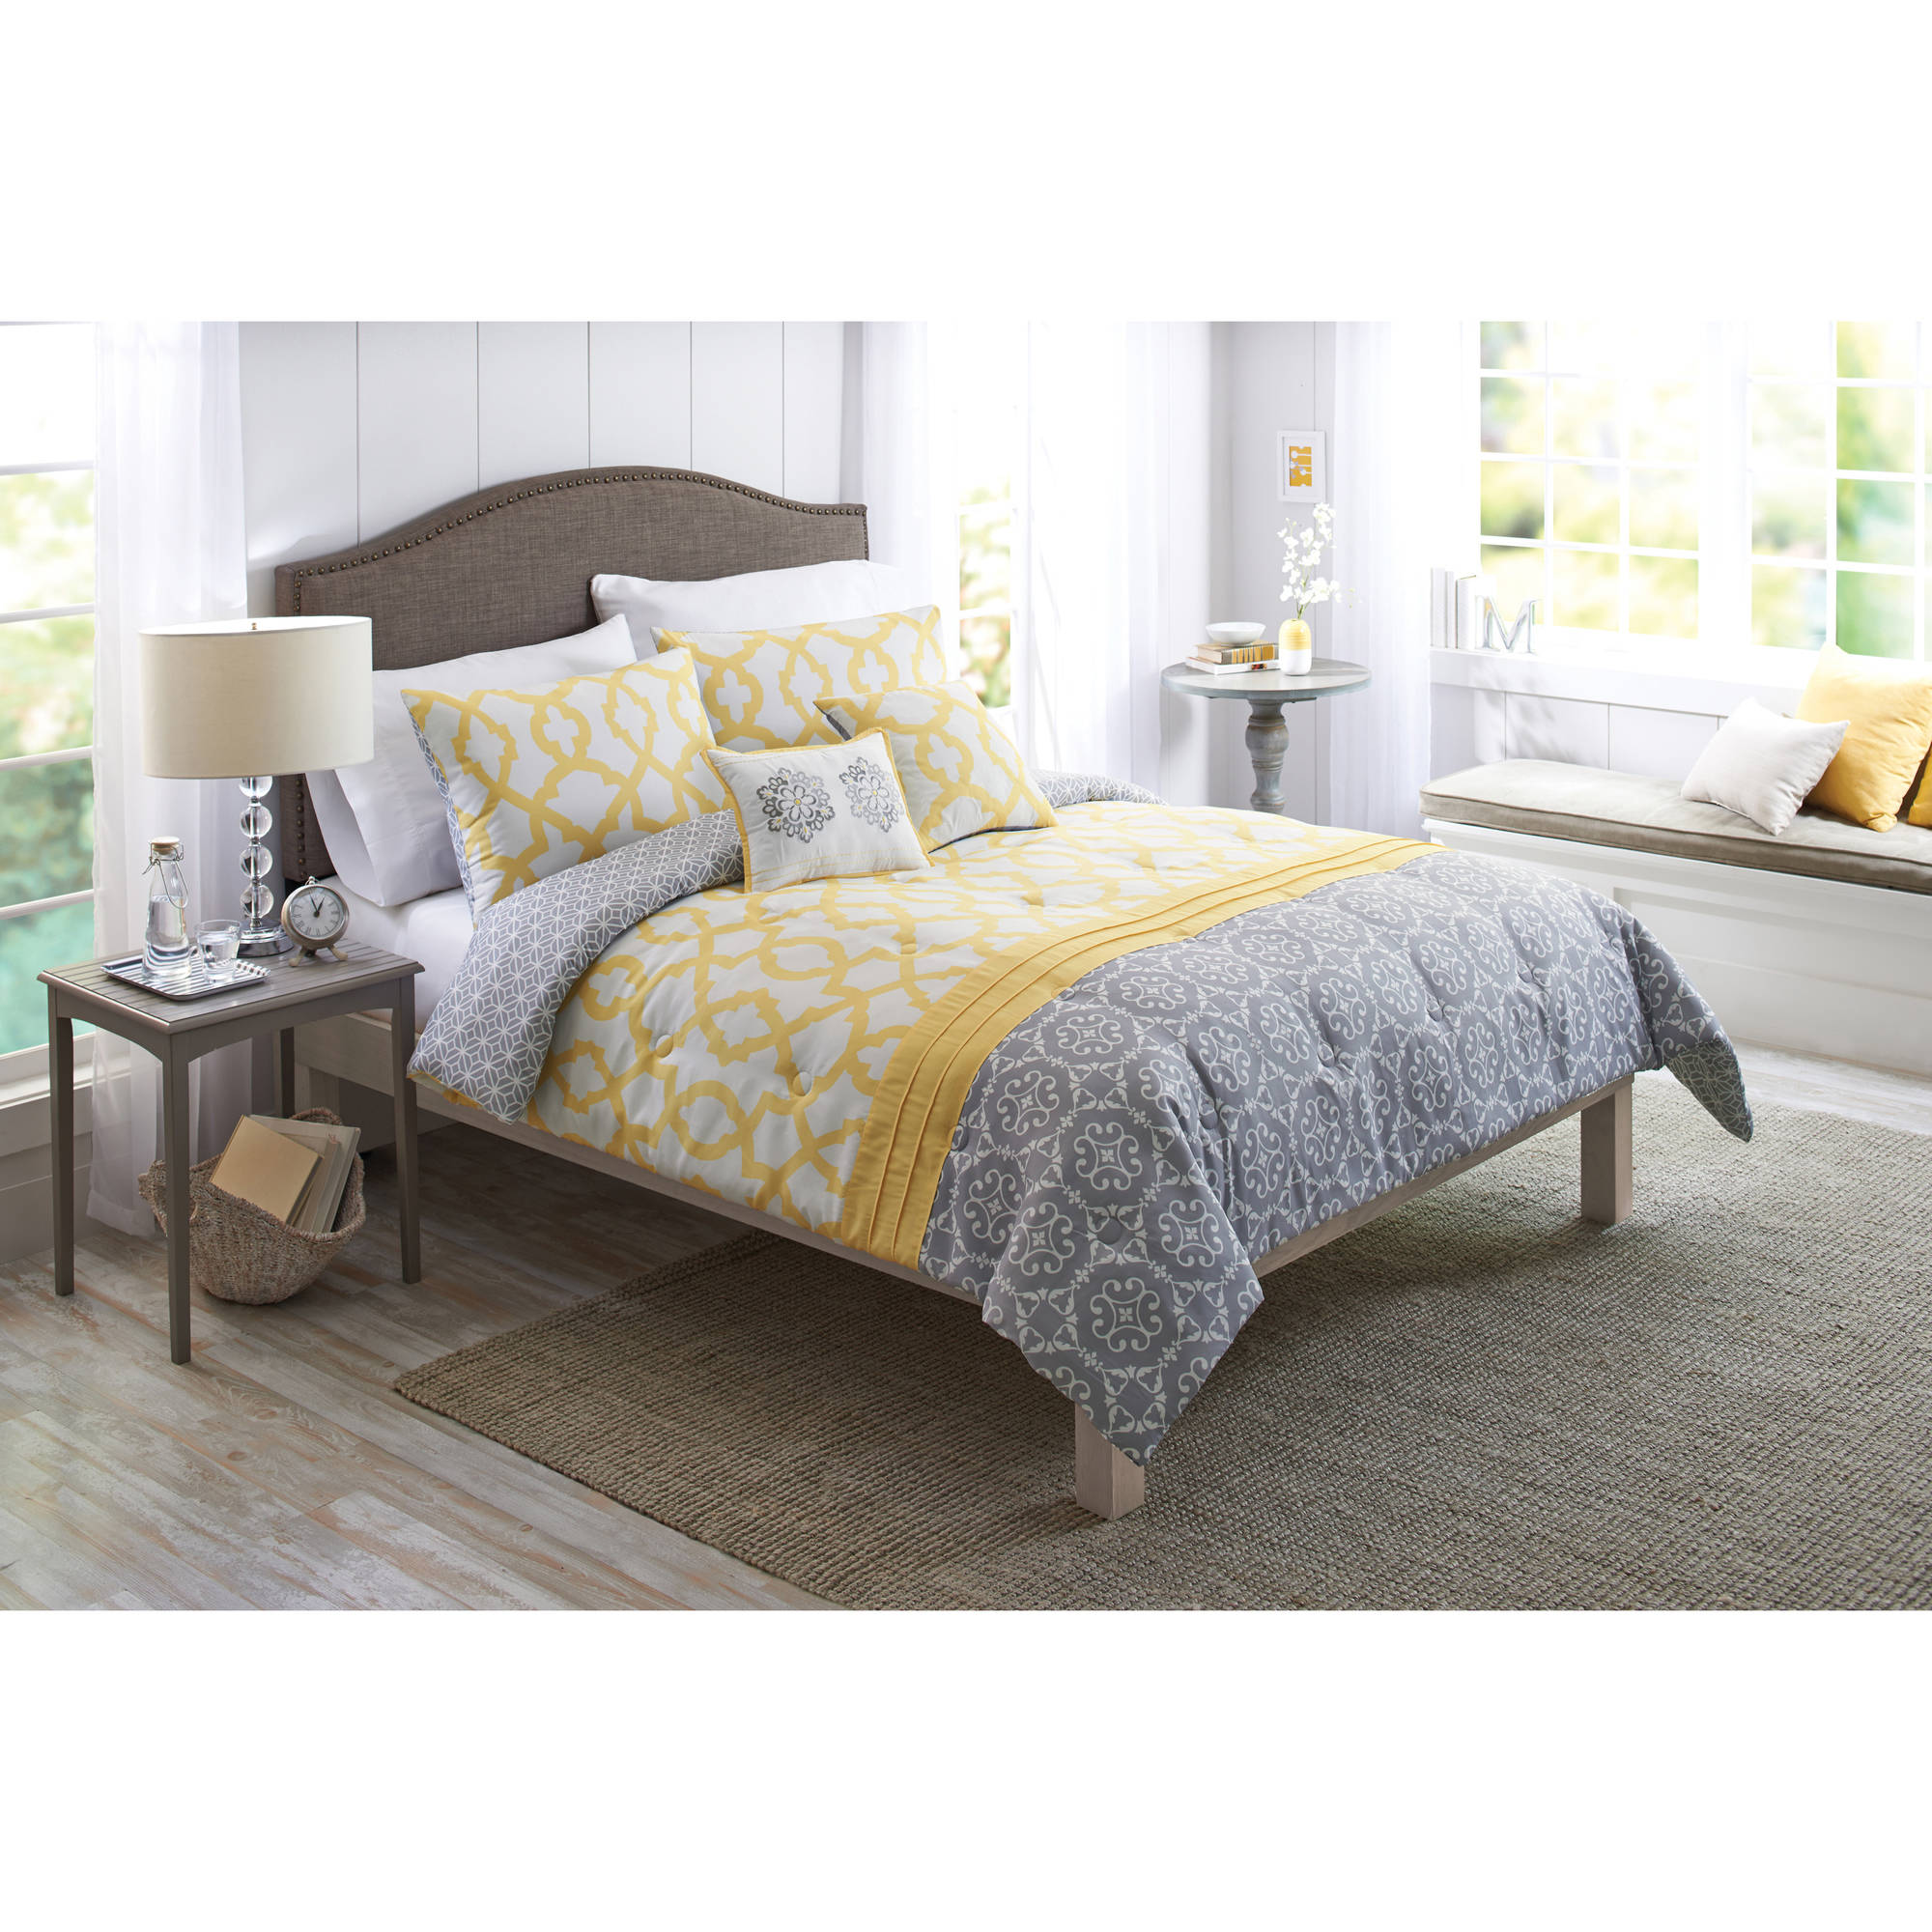 Better Homes and Gardens Yellow and Gray Medallion 5-Piece Bedding Comforter Set